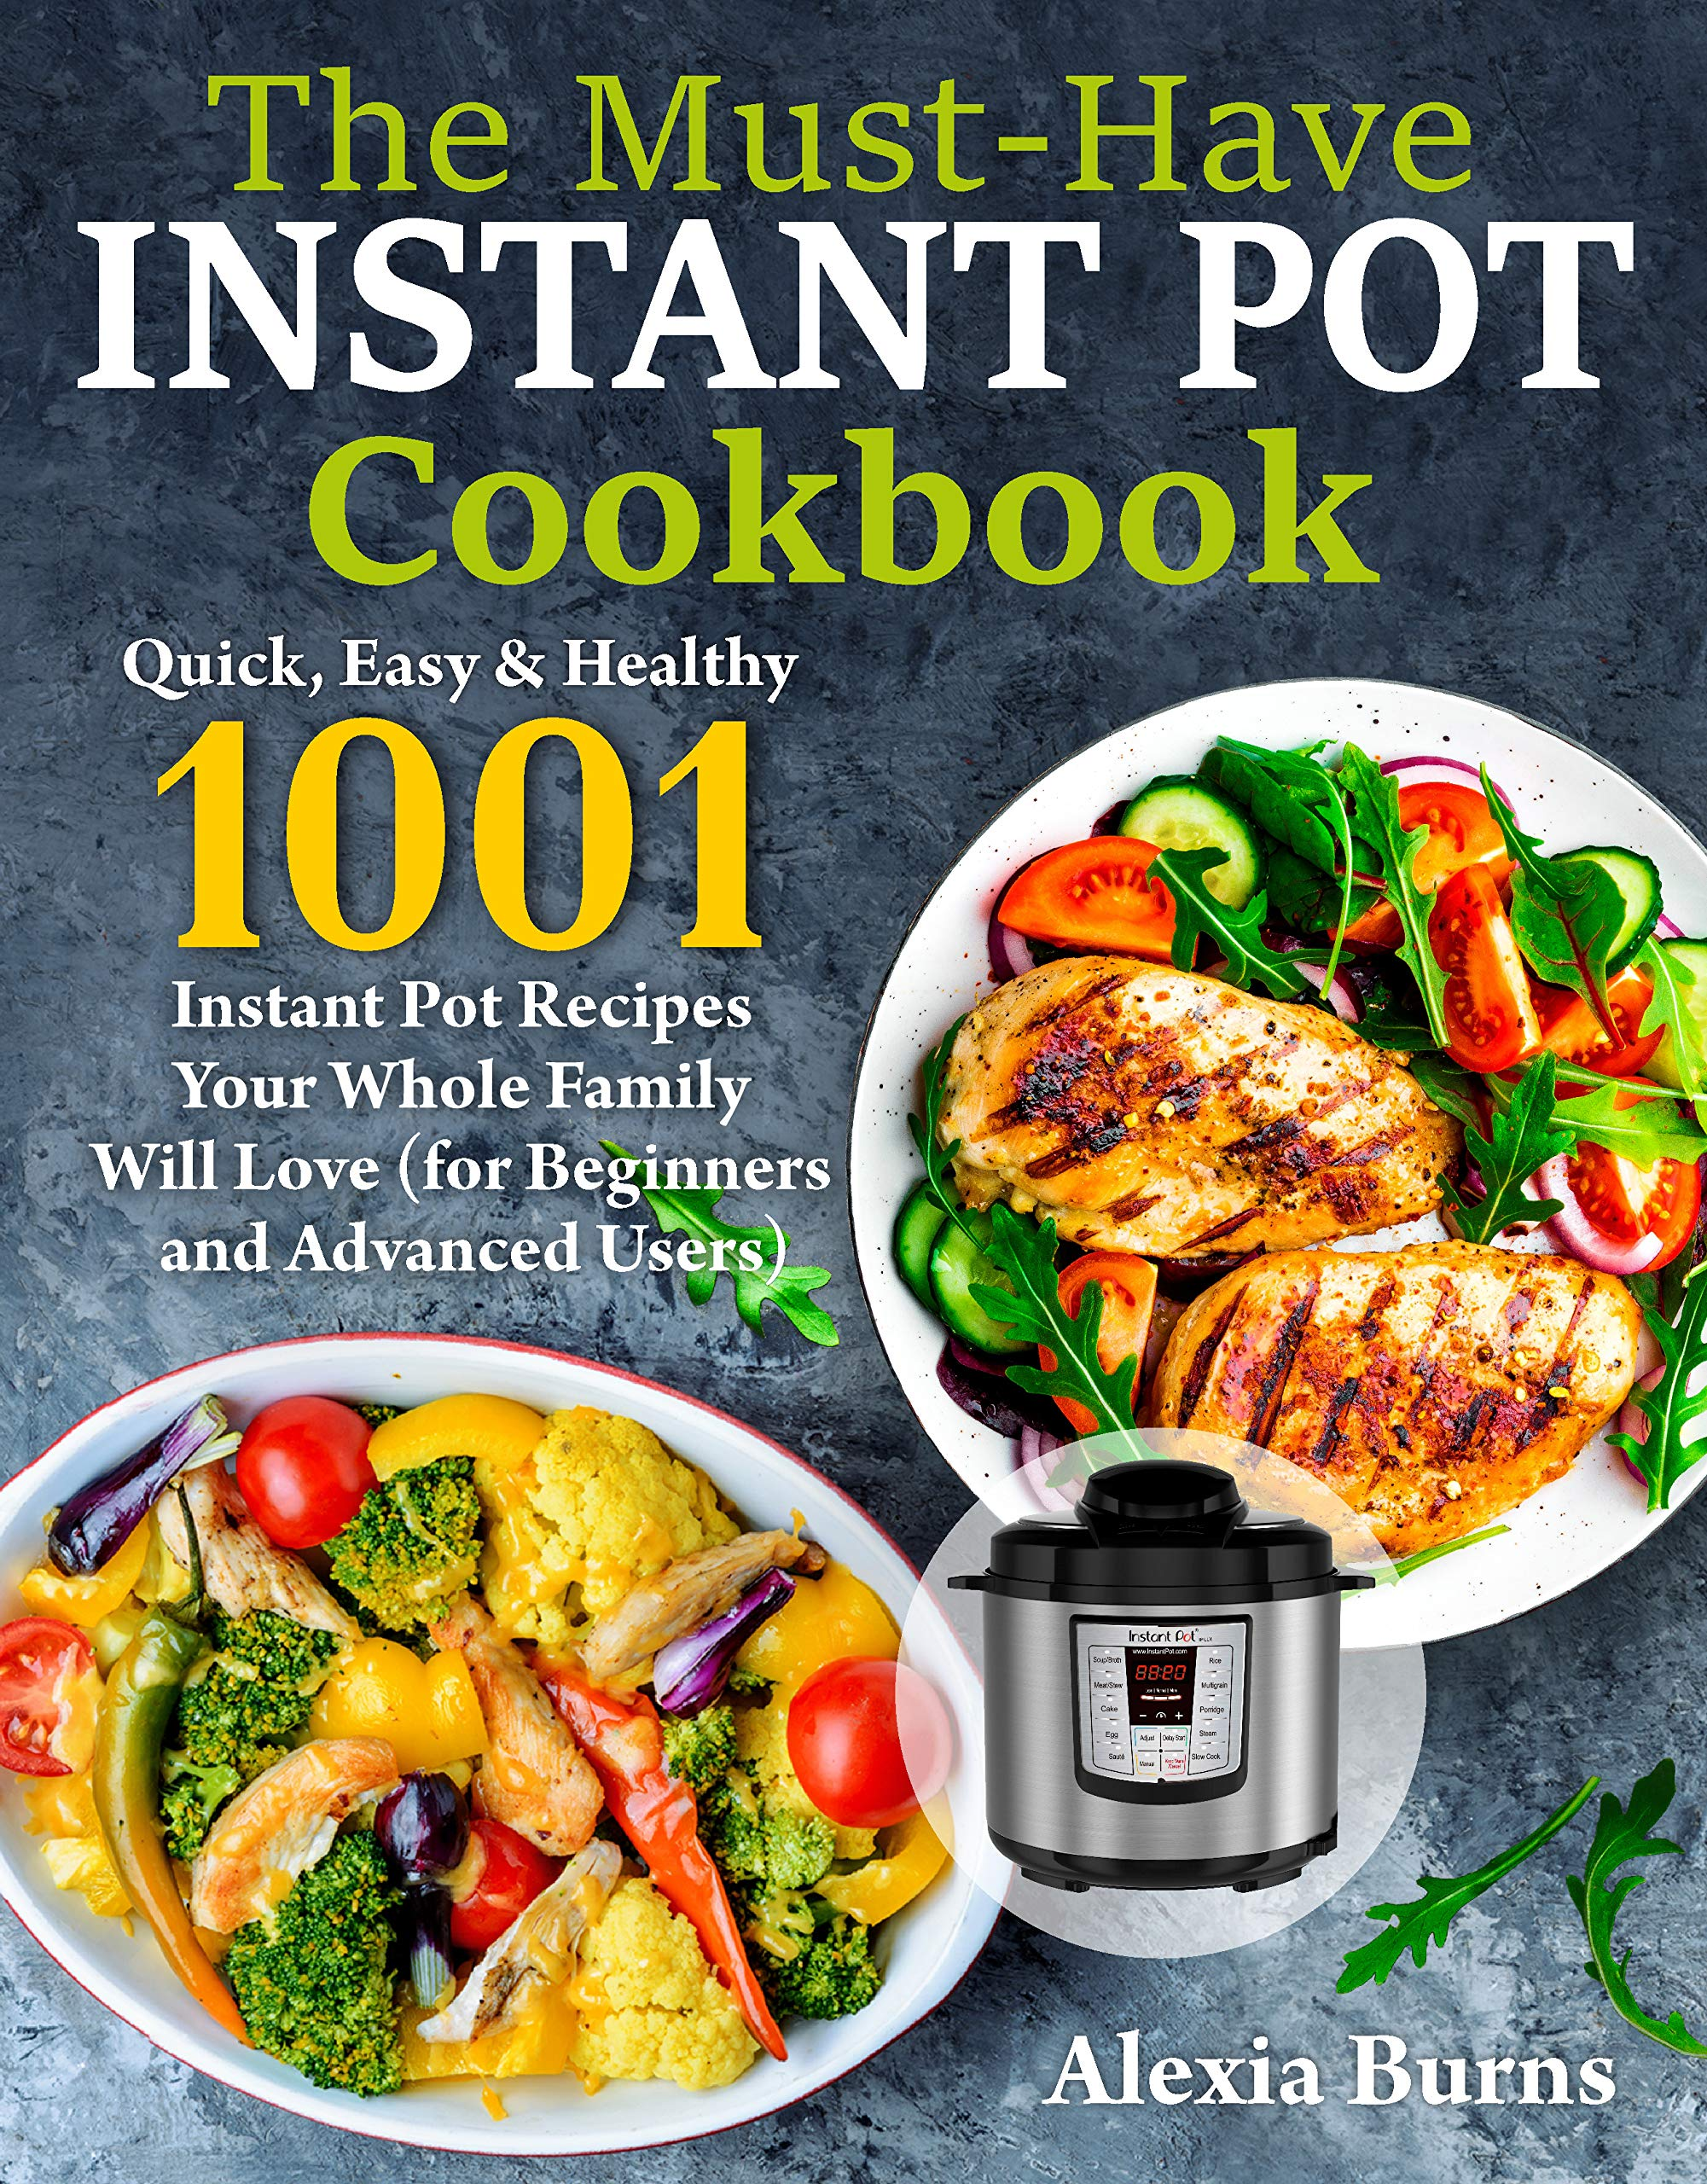 Instant Pot Cookbook: Quick, Easy & Healthy 1001 Instant Pot Recipes Your Whole Family Will Love